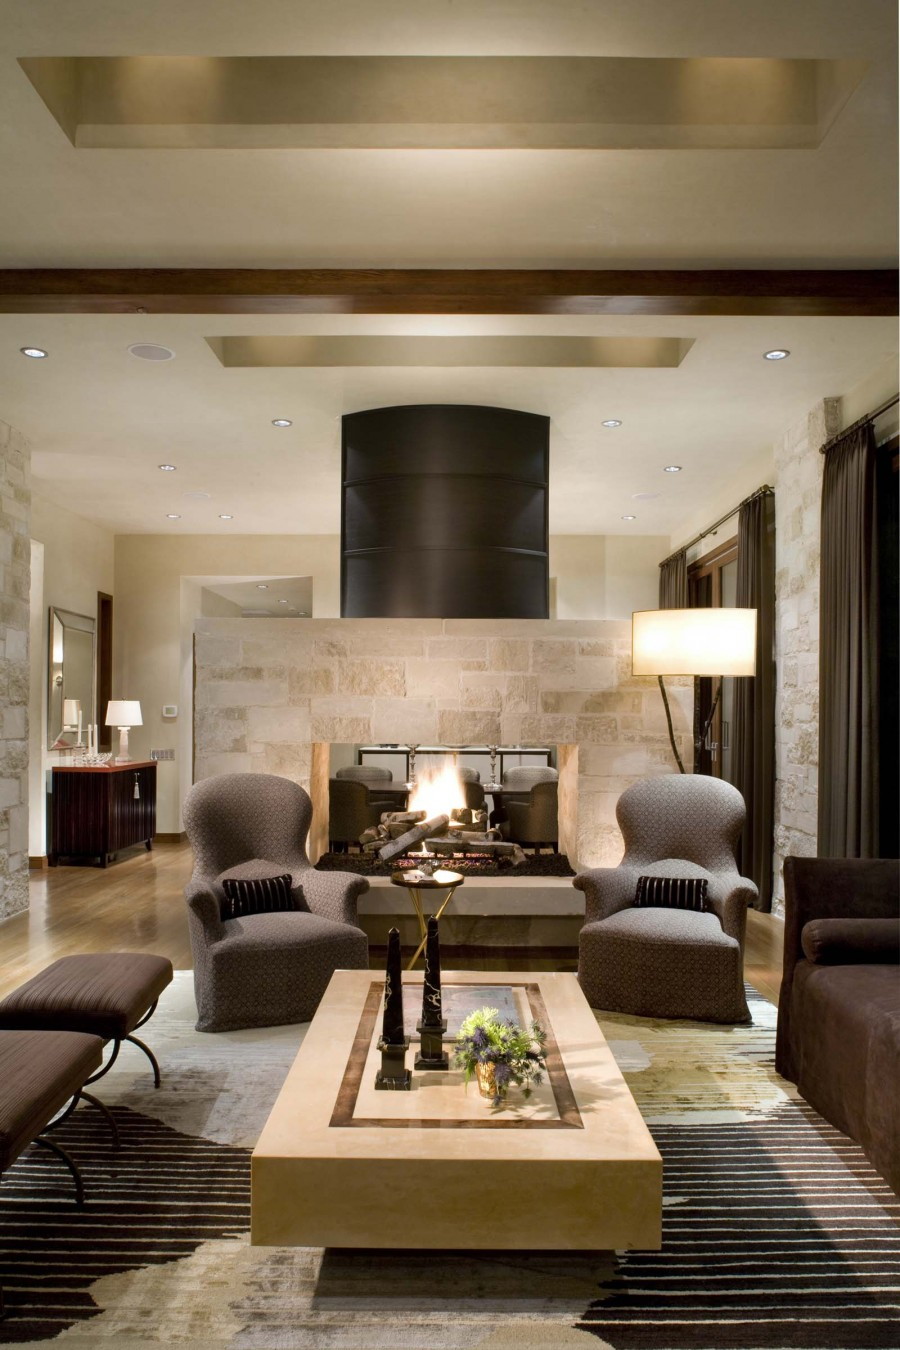 16 fabulous earth tones living room designs decoholic for Living room decor styles